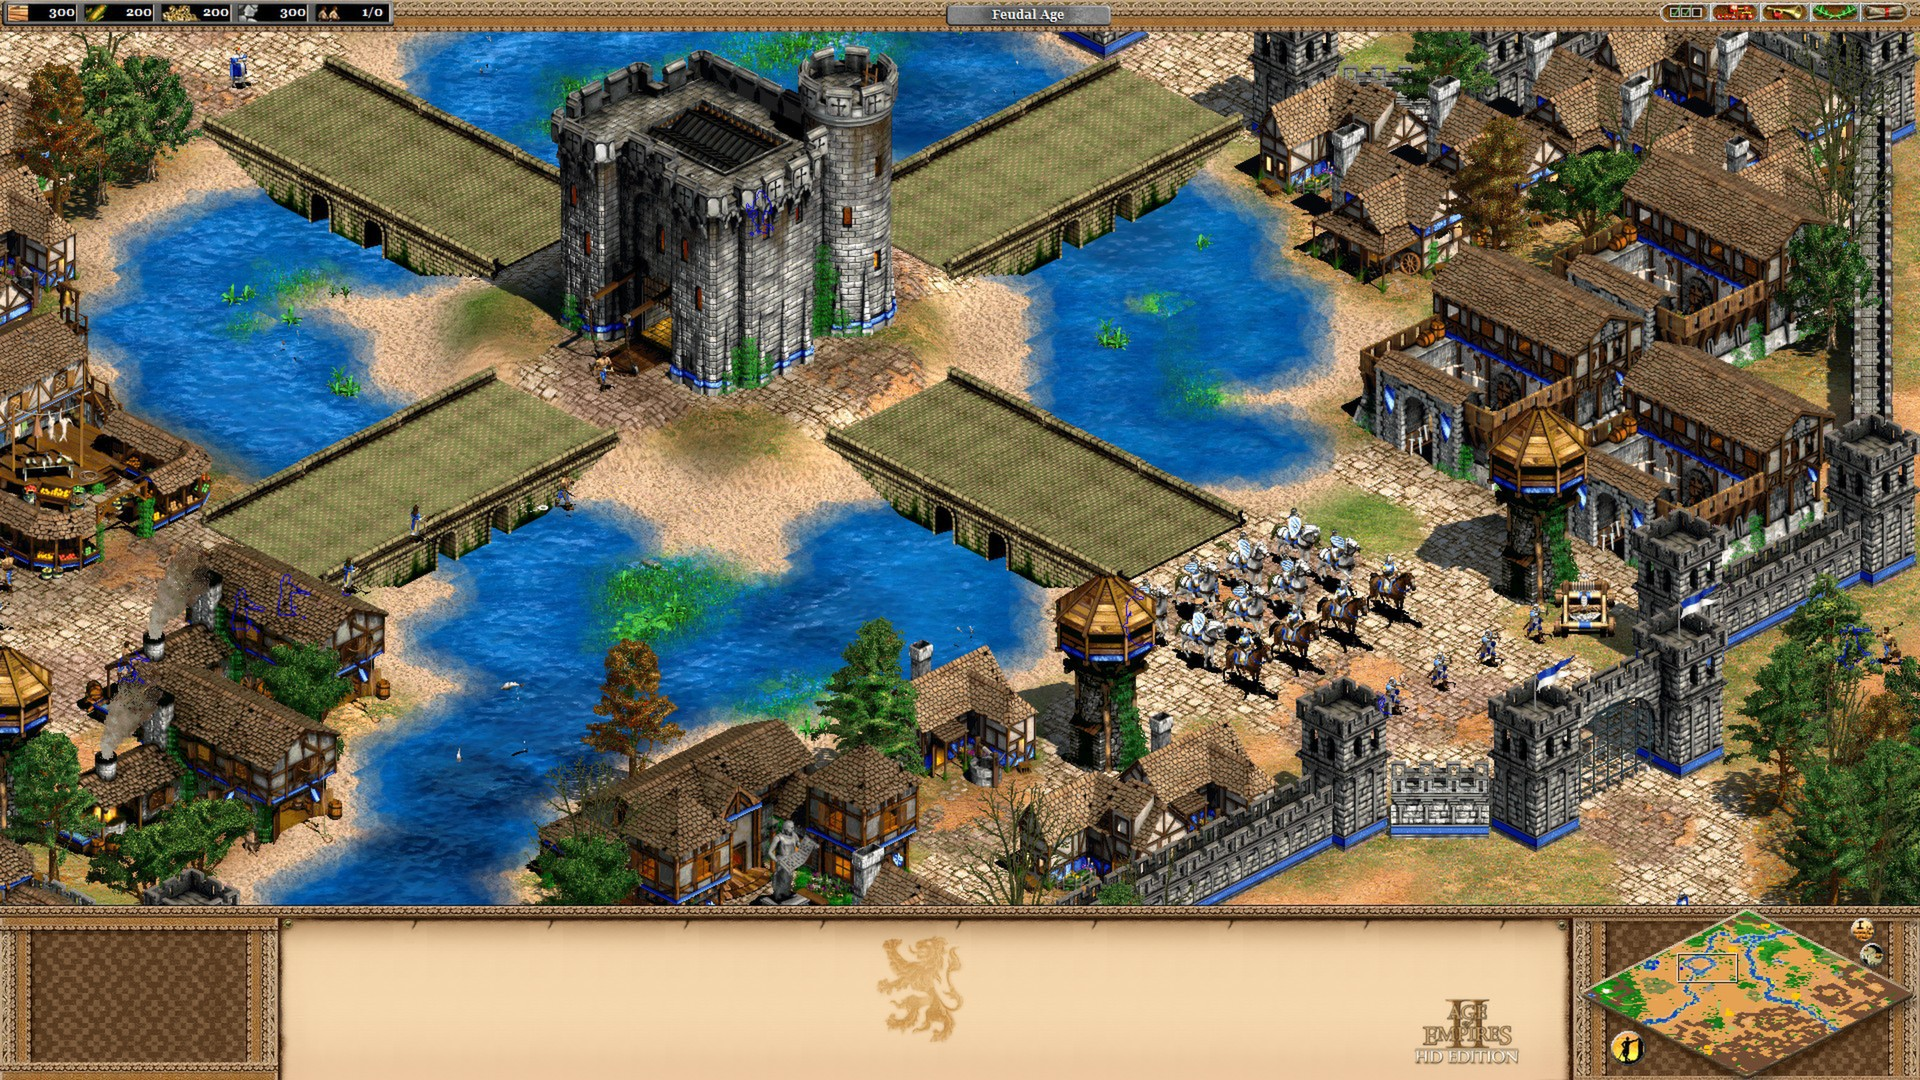 Download game age of empire 2 mobile casino game sets